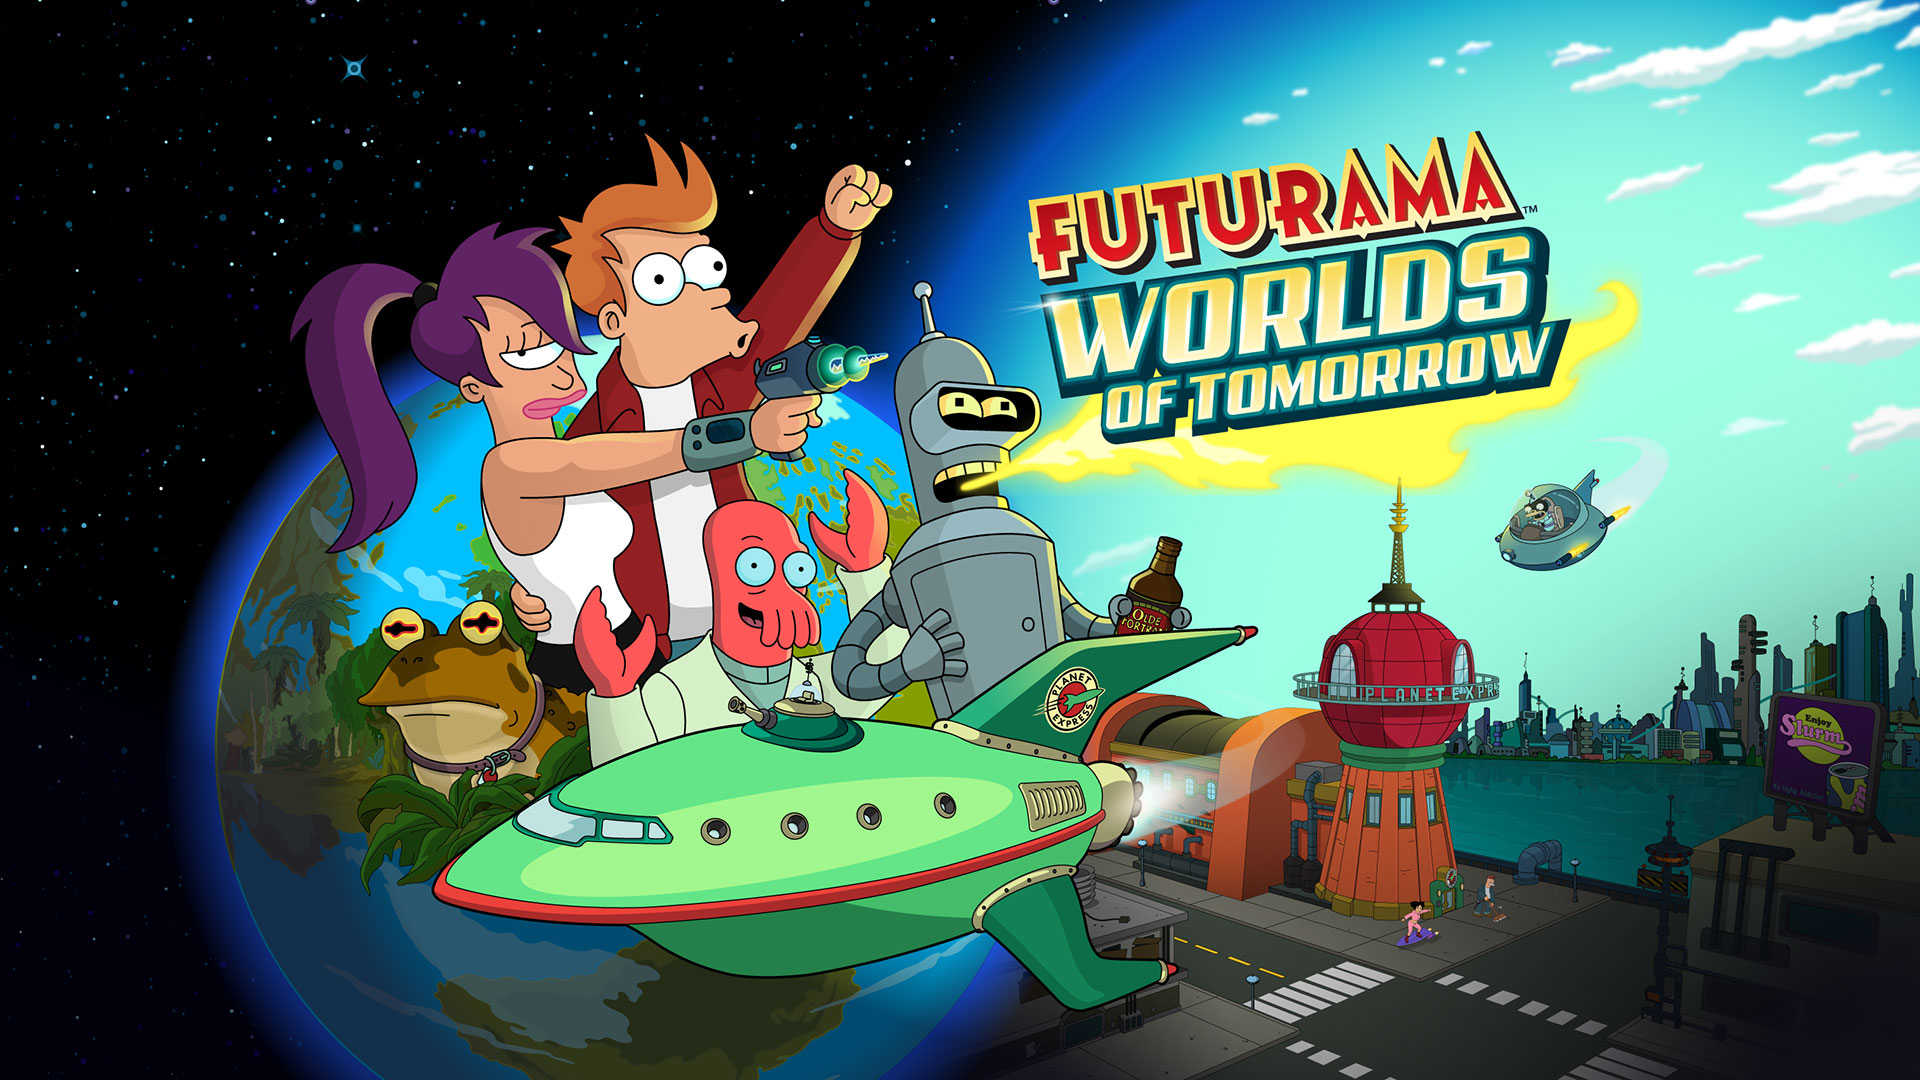 Futurama-Worlds-of-Tomorrow.jpg